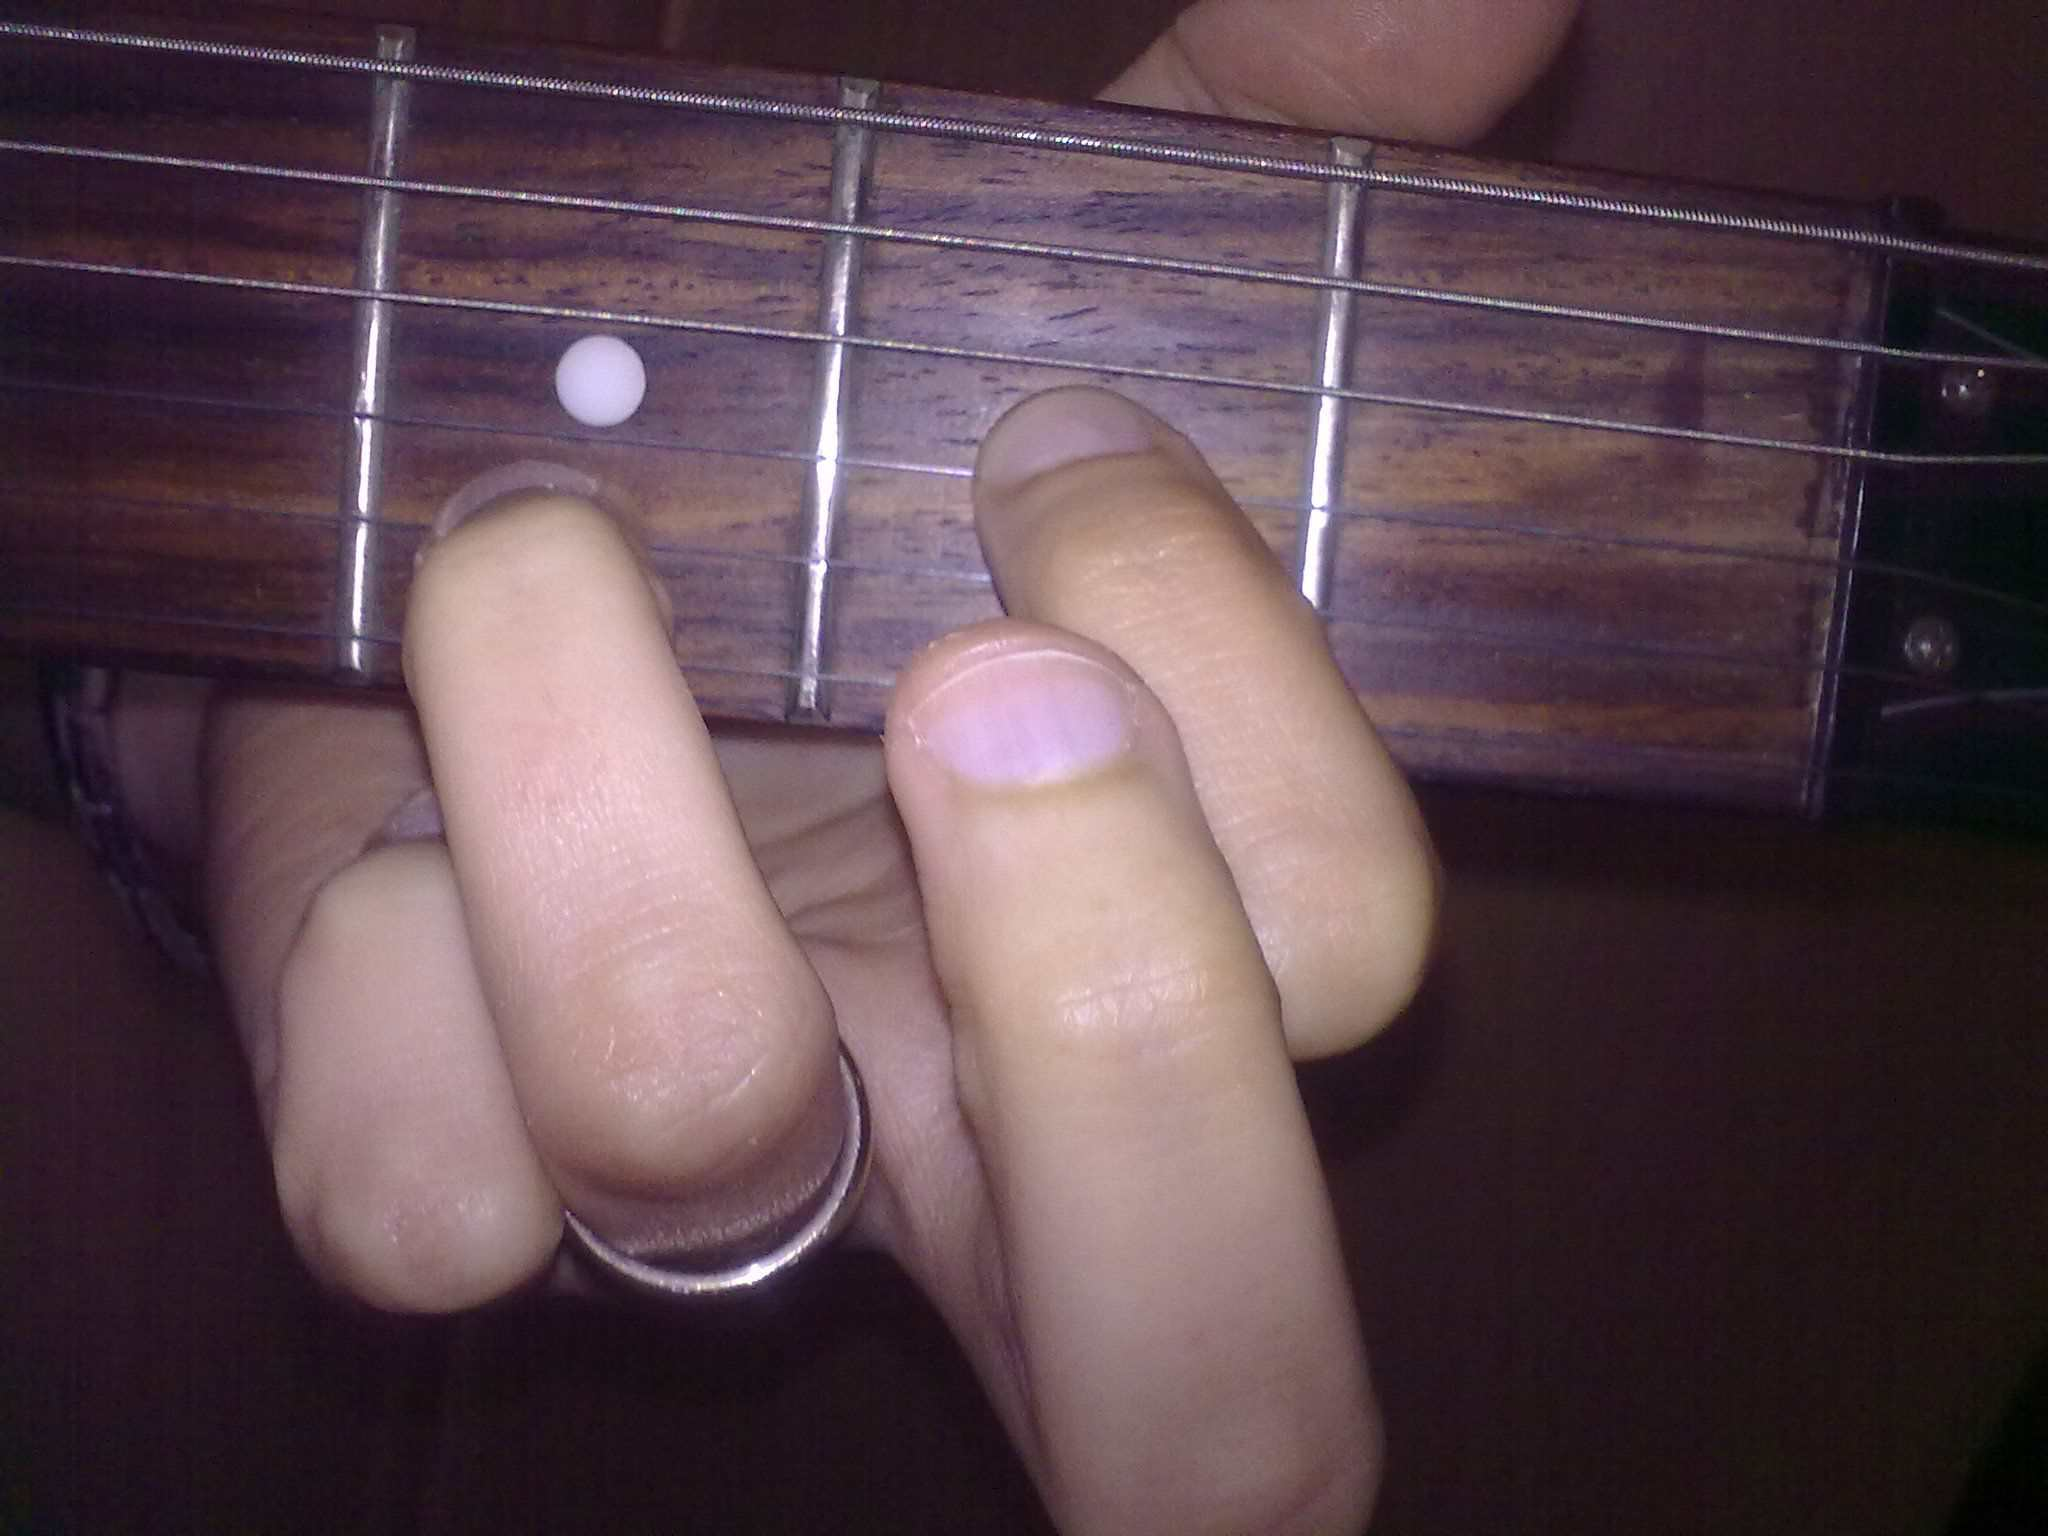 Guitar fingering needed to create the Dsus2 chord.